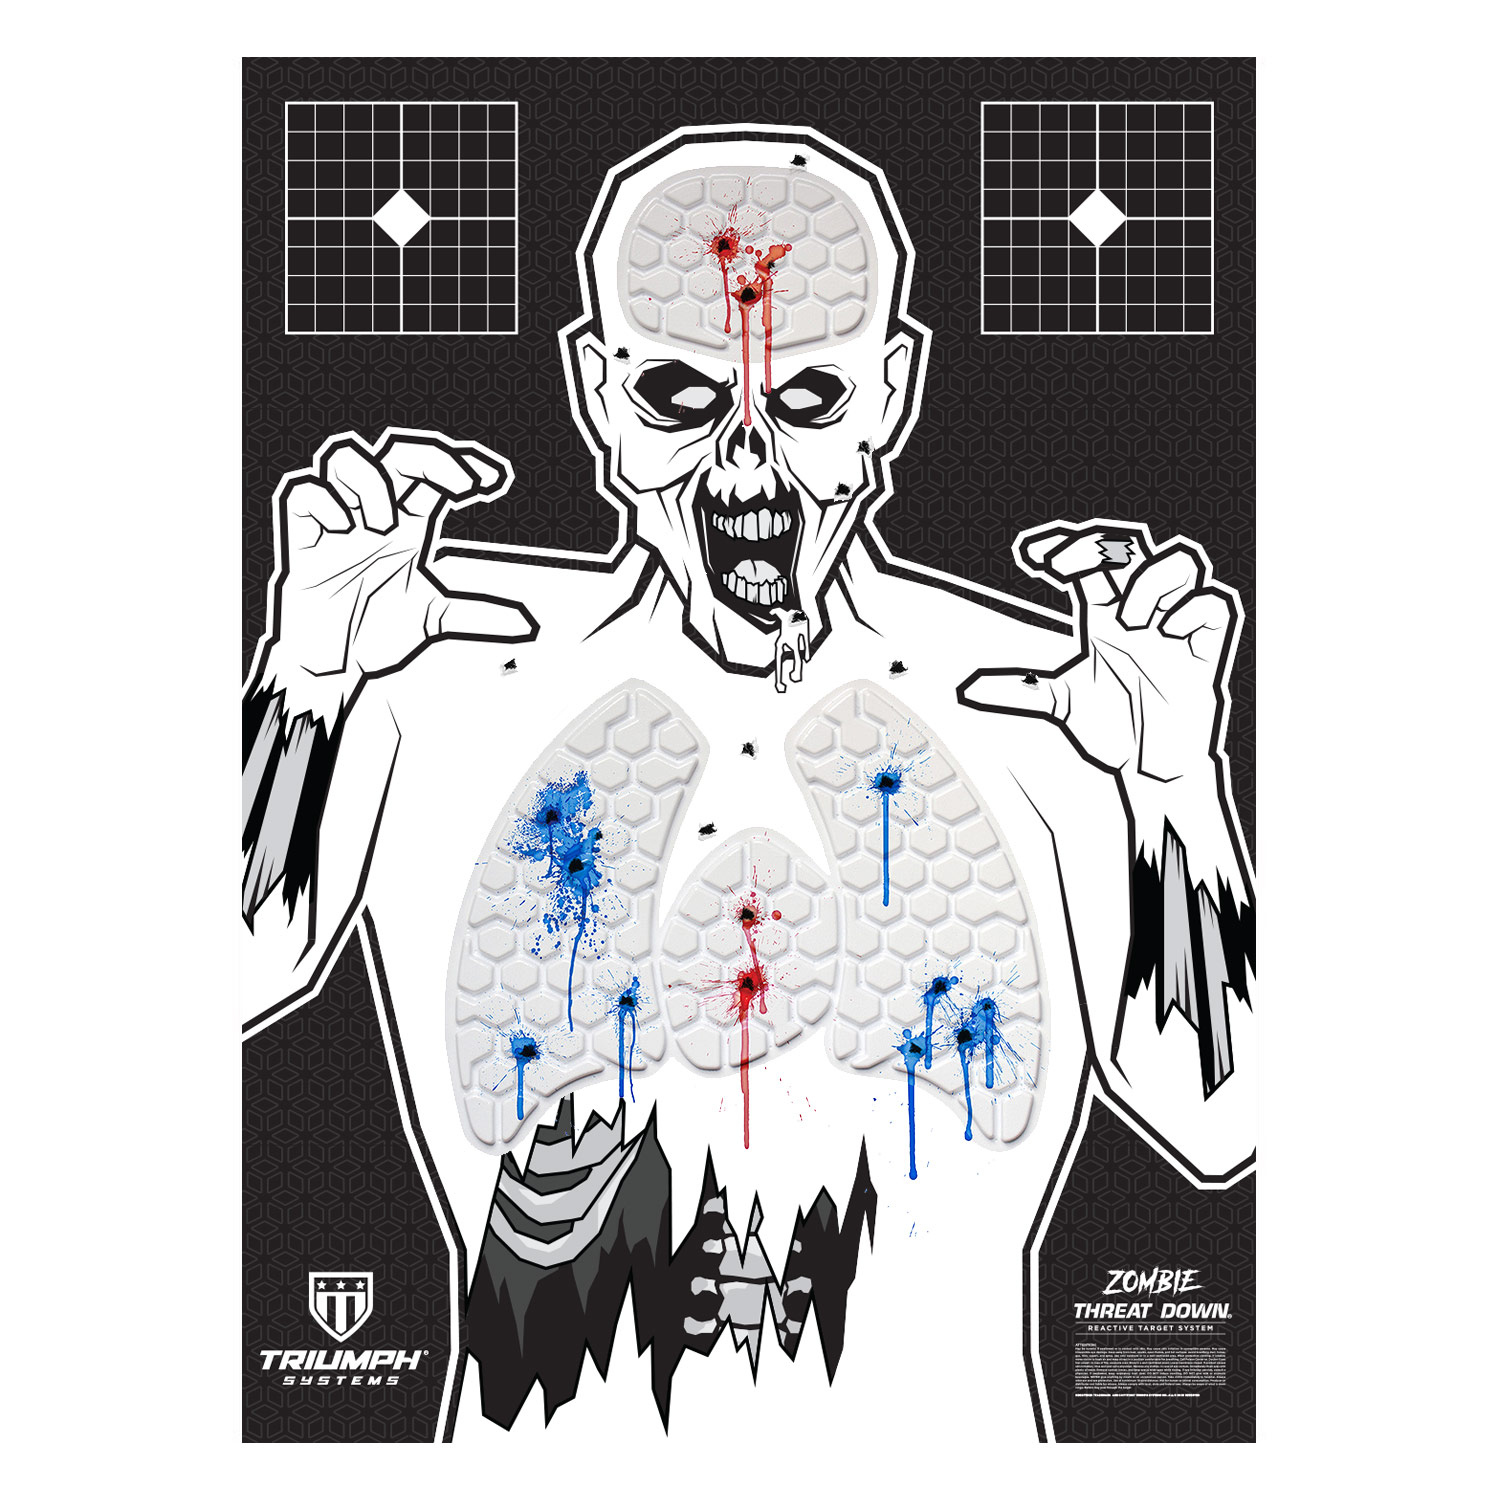 Threat Down Zombie Silhouette | Reactive Target | Shooting Target | Reactive Splatter Cells | Air Rifle, Pistol, Shotgun, Throwing Knives | Target